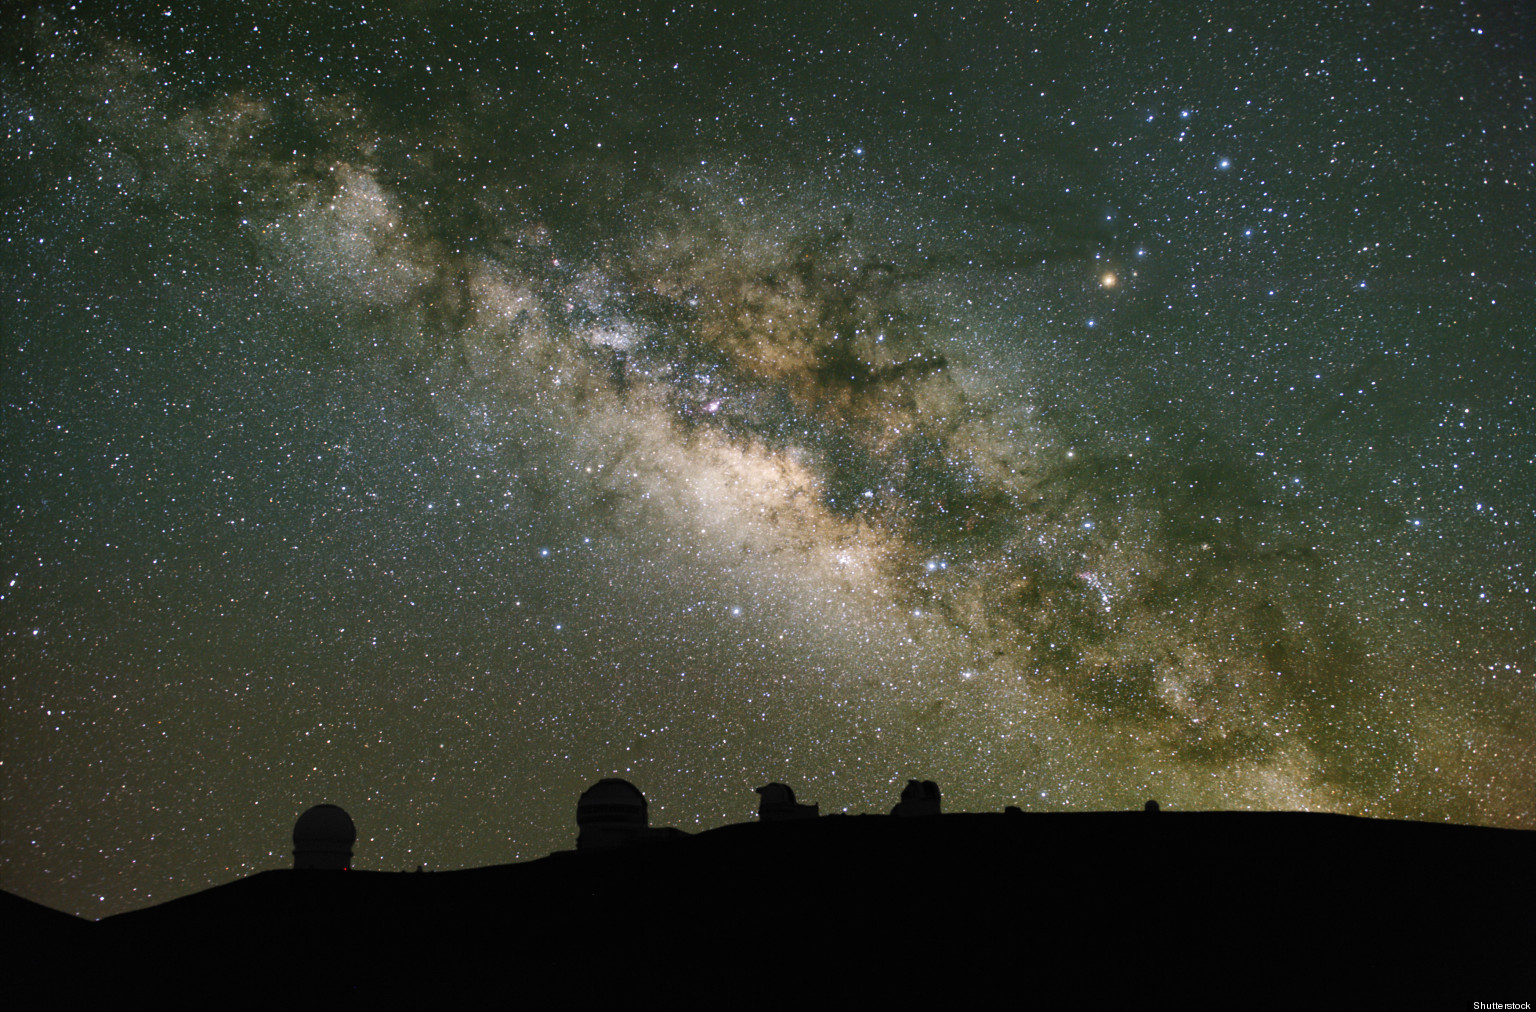 Best Travel Destinations For Stargazing HuffPost - The 10 best stargazing spots in the northern hemisphere